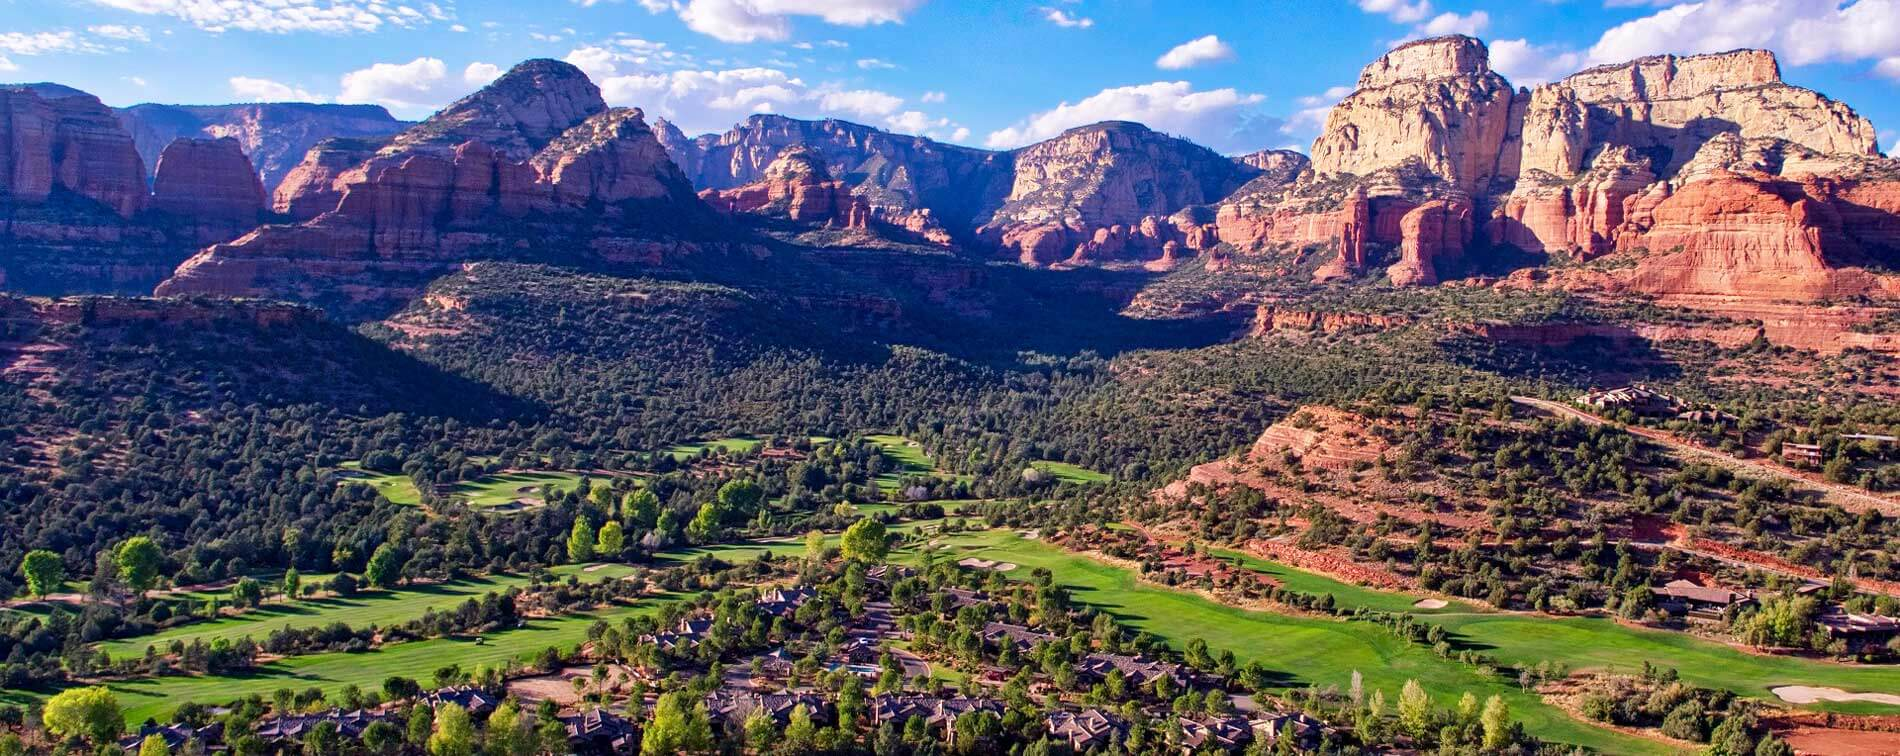 About Seven Canyons Sedona